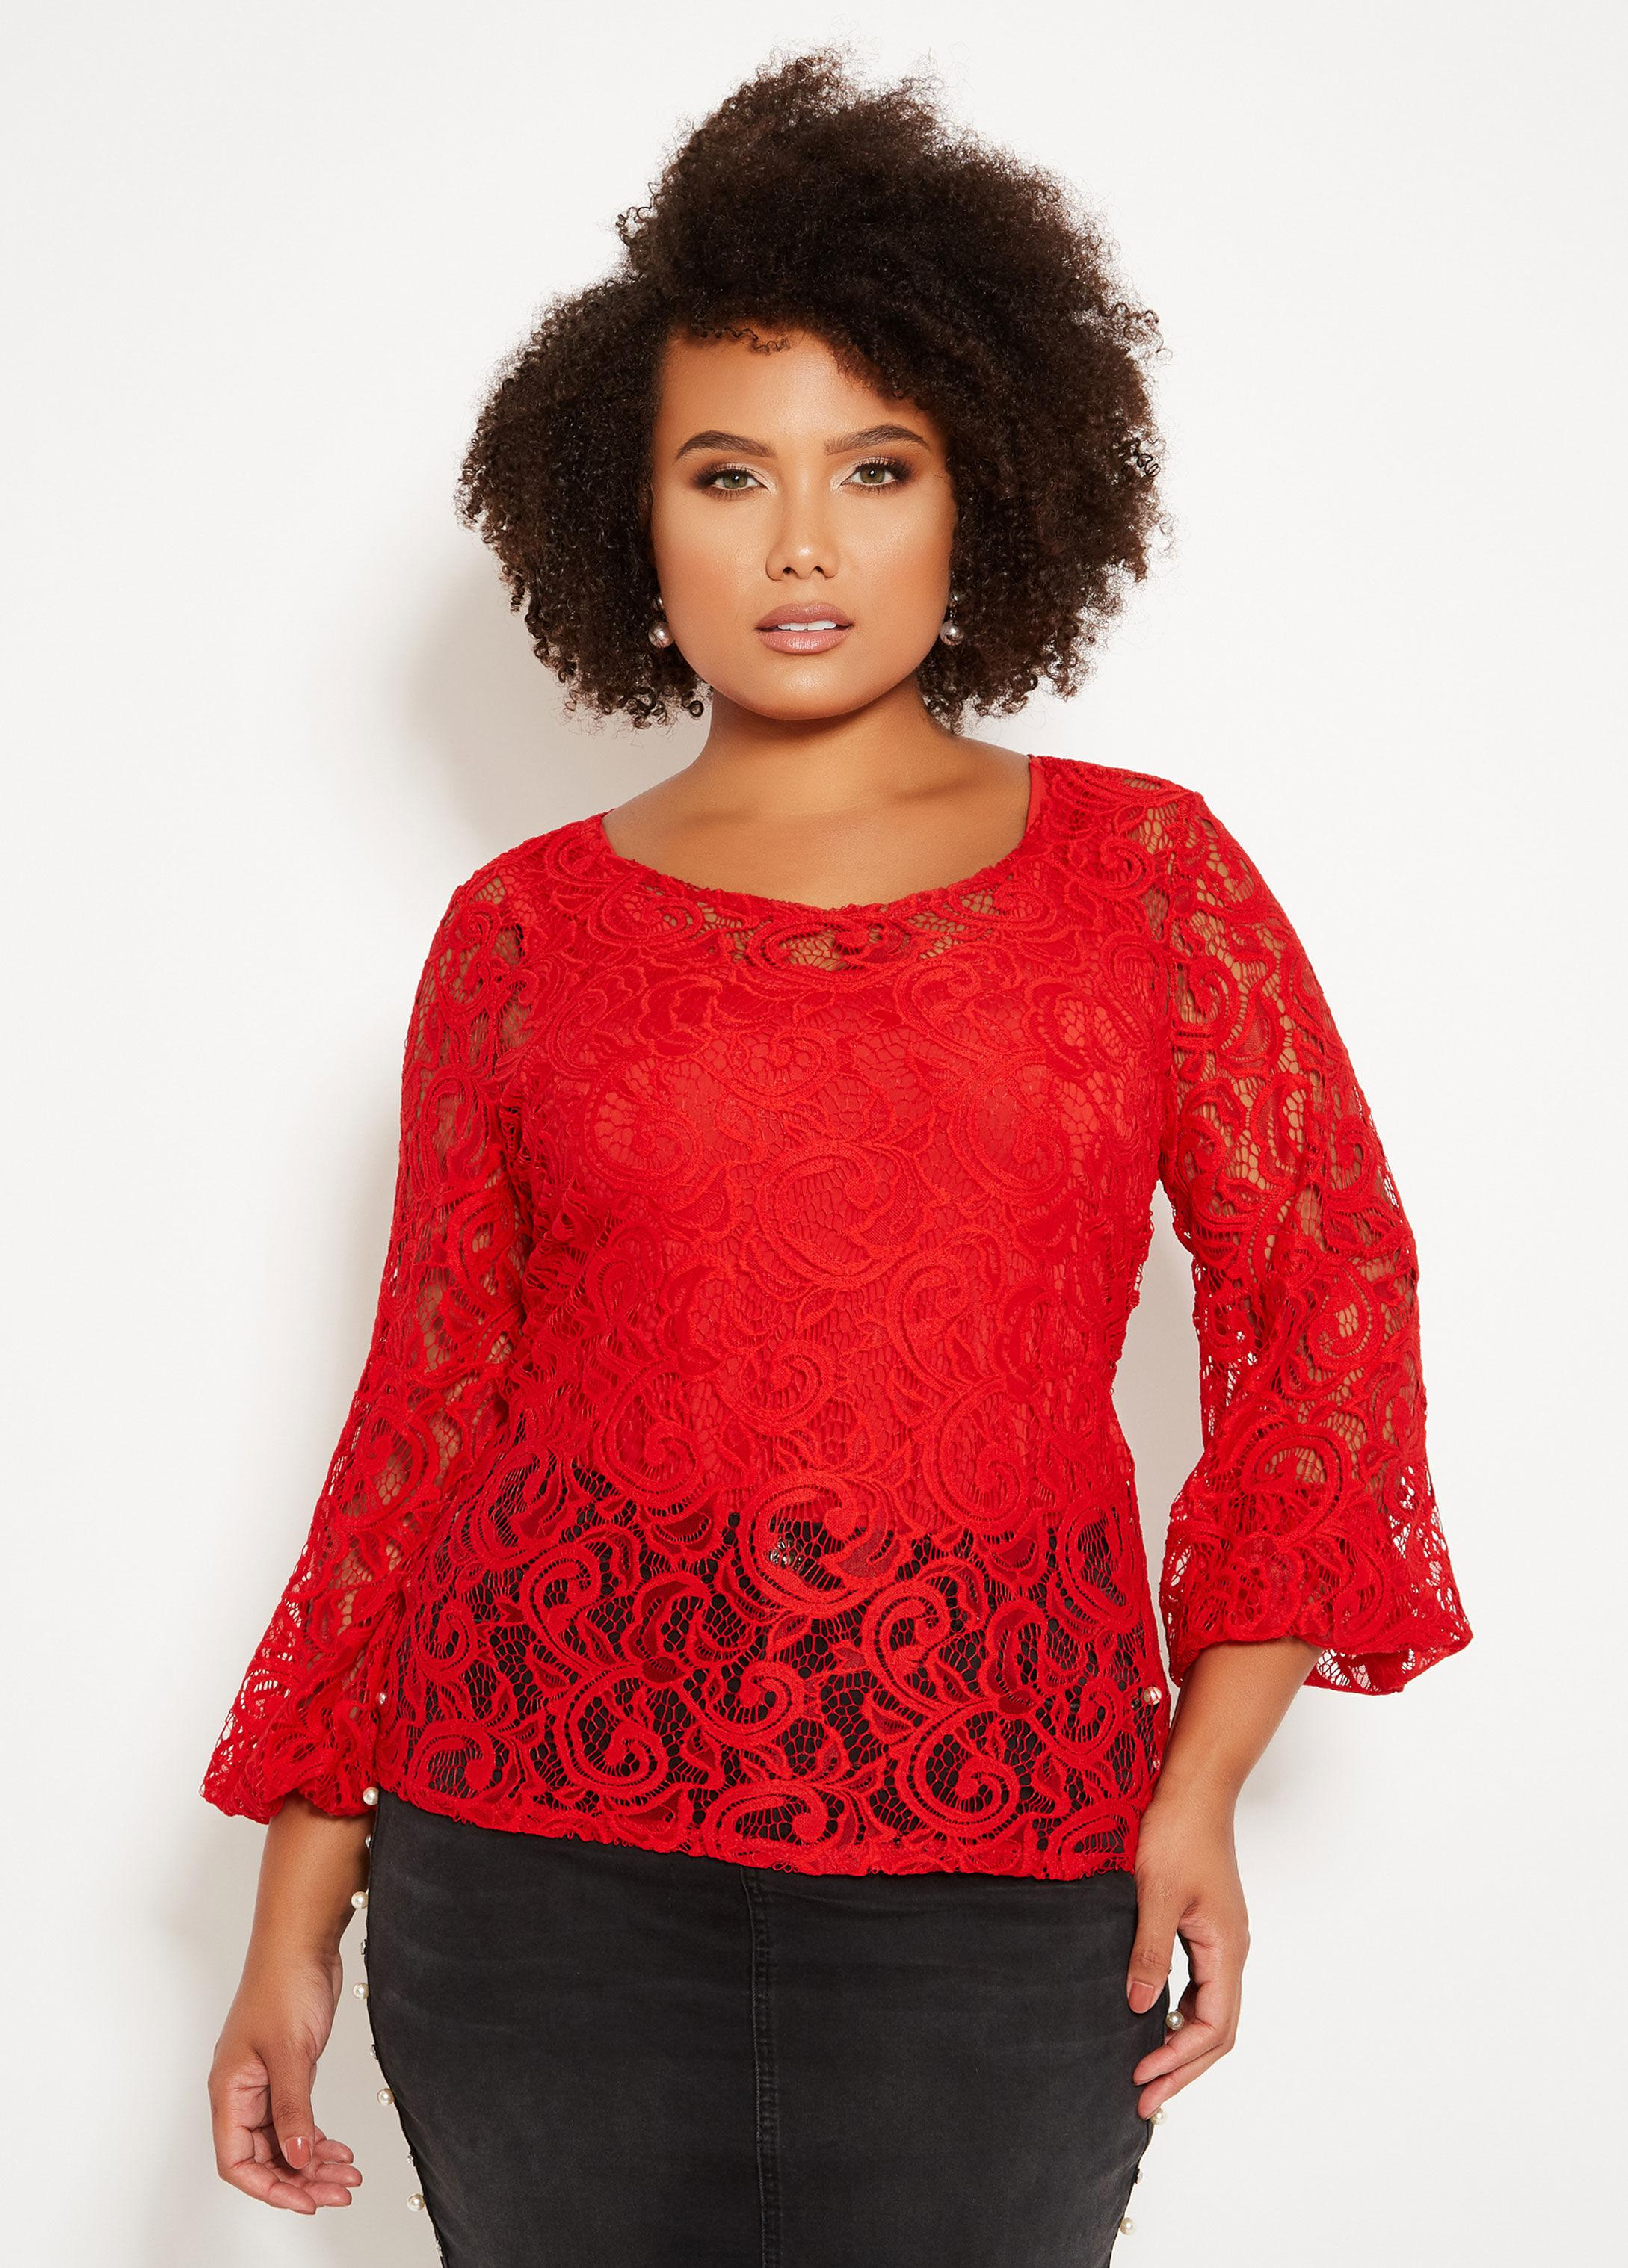 b78fcdd4068 Lyst - Ashley Stewart Plus Size Sheer Lace Bubble Sleeve Top in Red